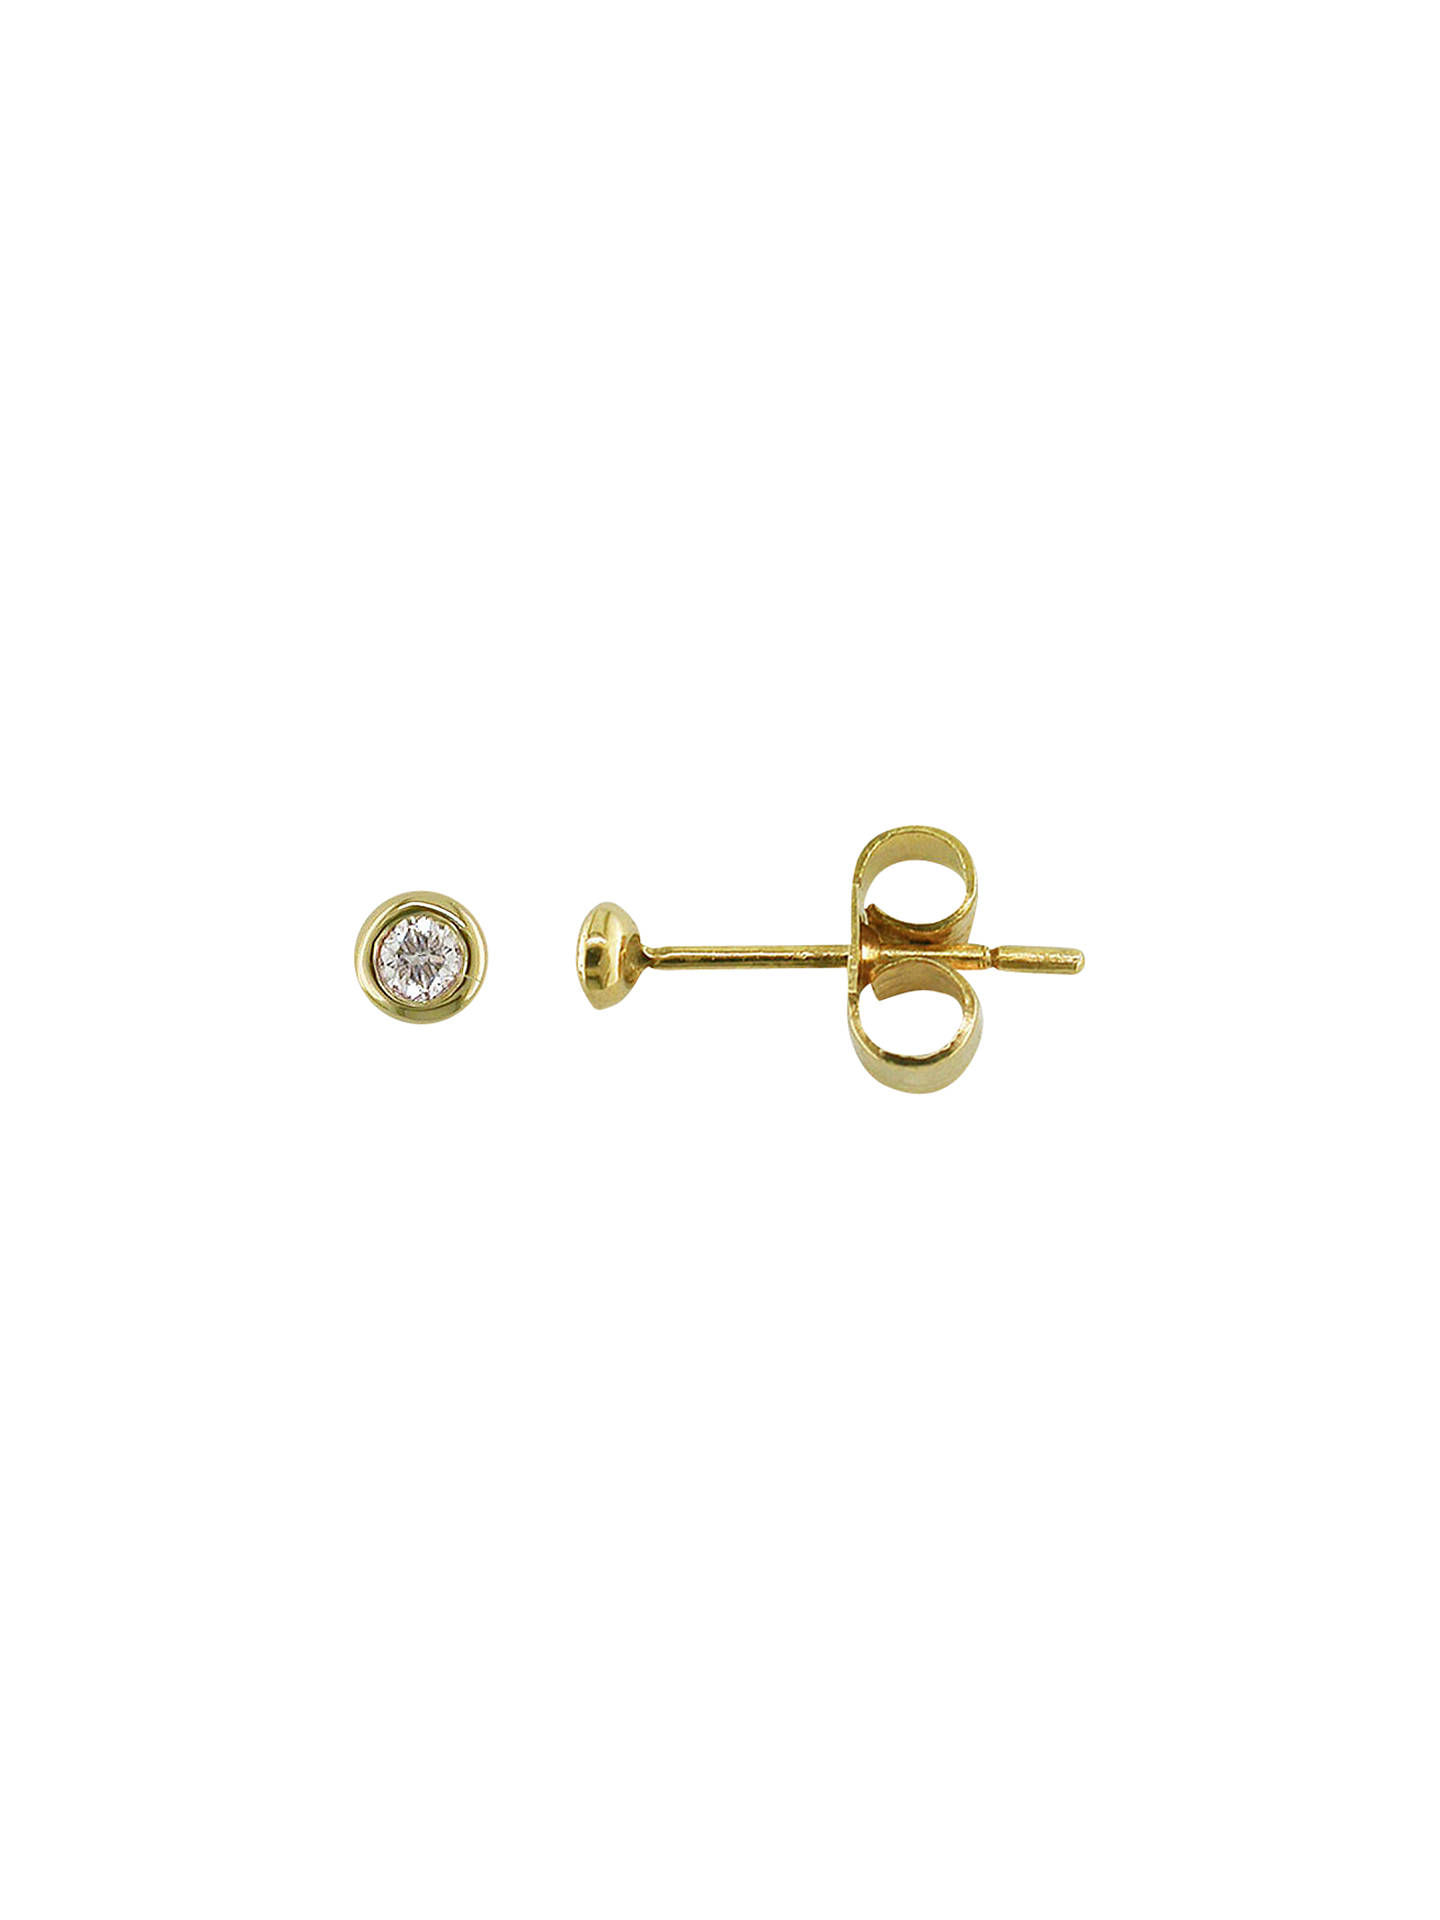 BuyLondon Road 9ct Gold Portobello Raindrop Diamond Stud Earrings, Yellow Gold Online at johnlewis.com